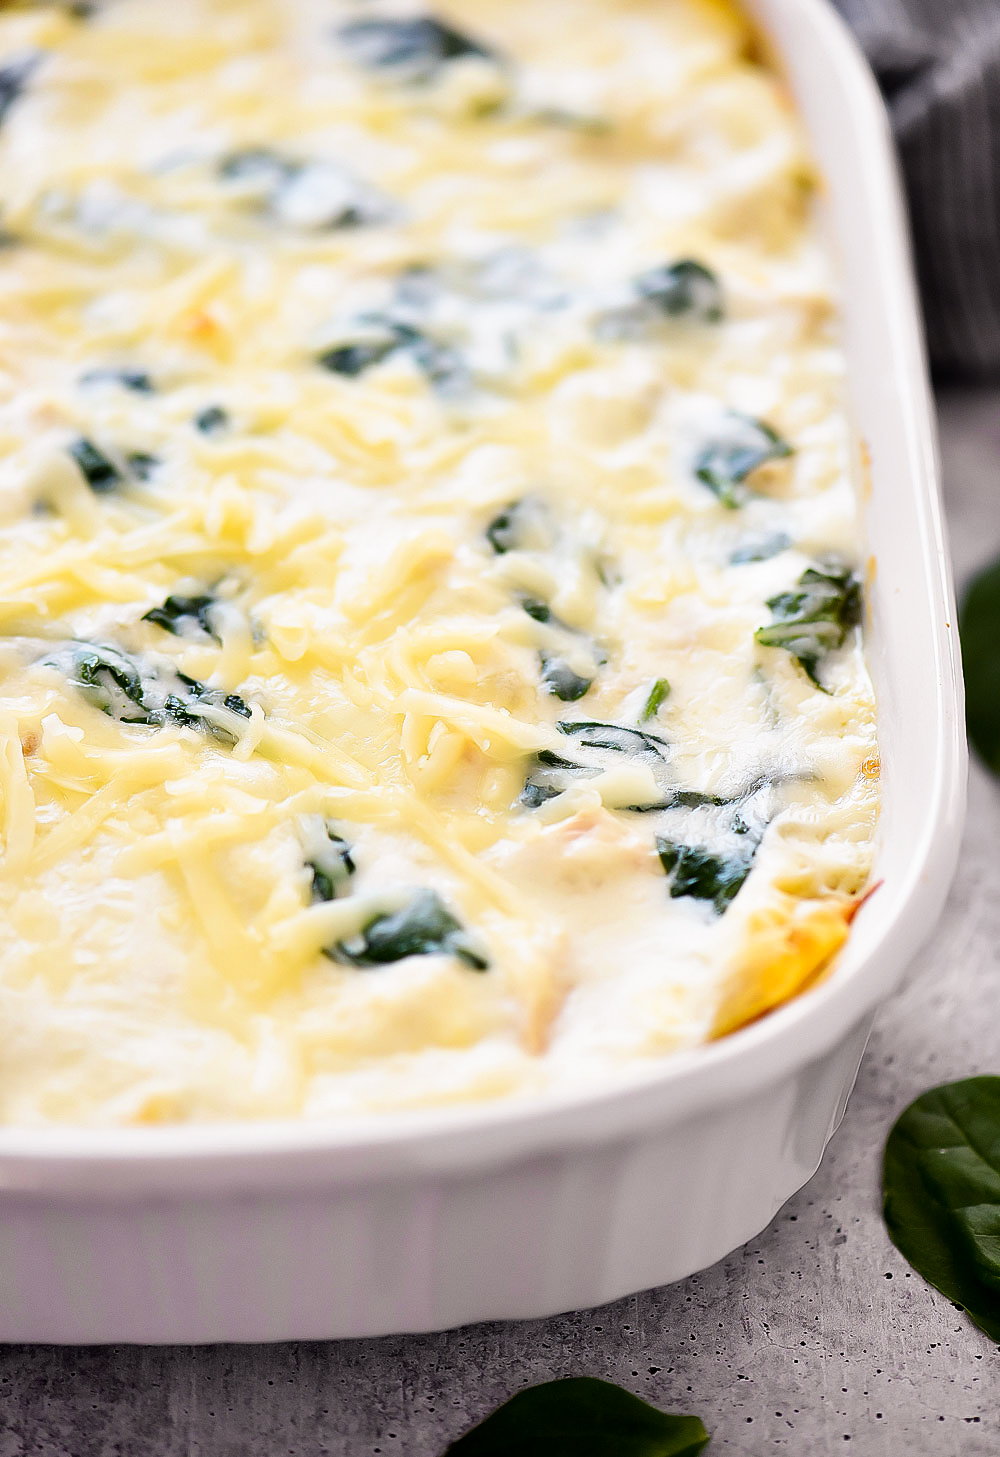 A white cheese lasagna with layers of noodles, white cheese sauce, Mozzarella cheese and spinach leaves. Life-in-the-Lofthouse.com